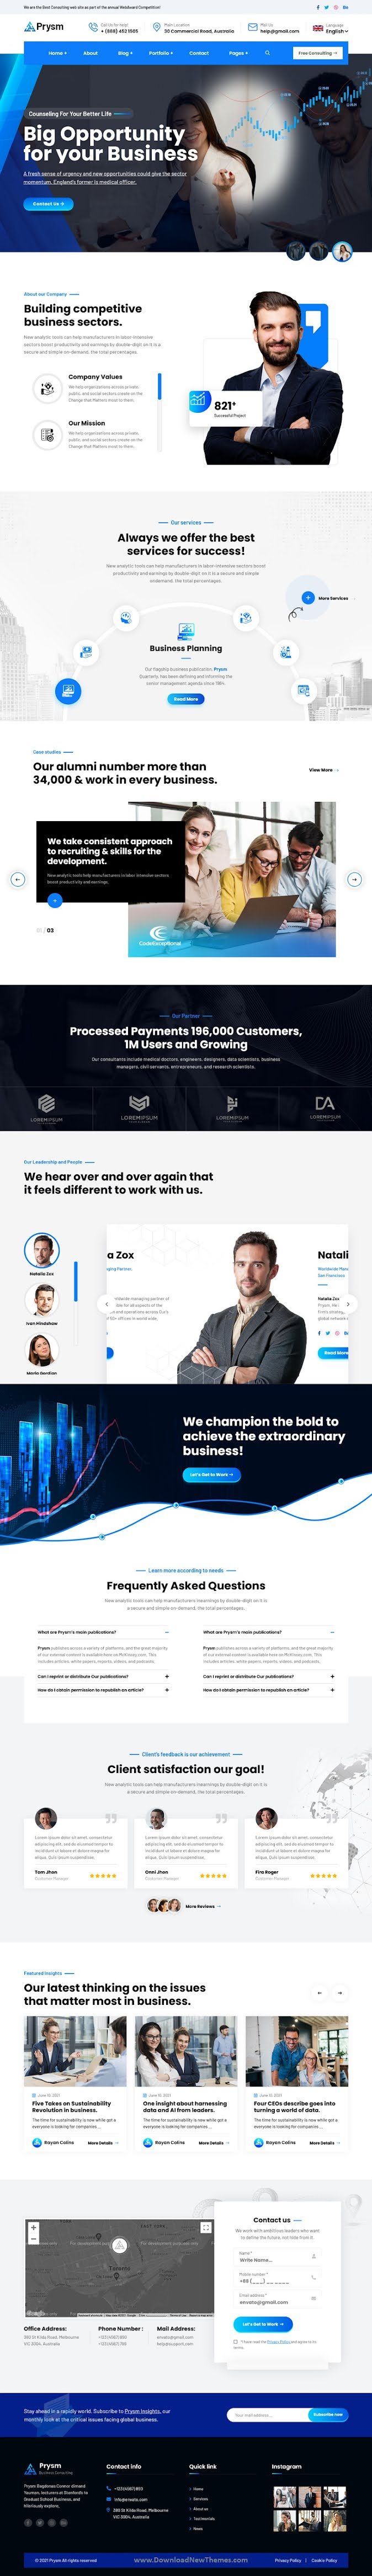 Primor– Business Consulting and Professional Services HubSpot Theme